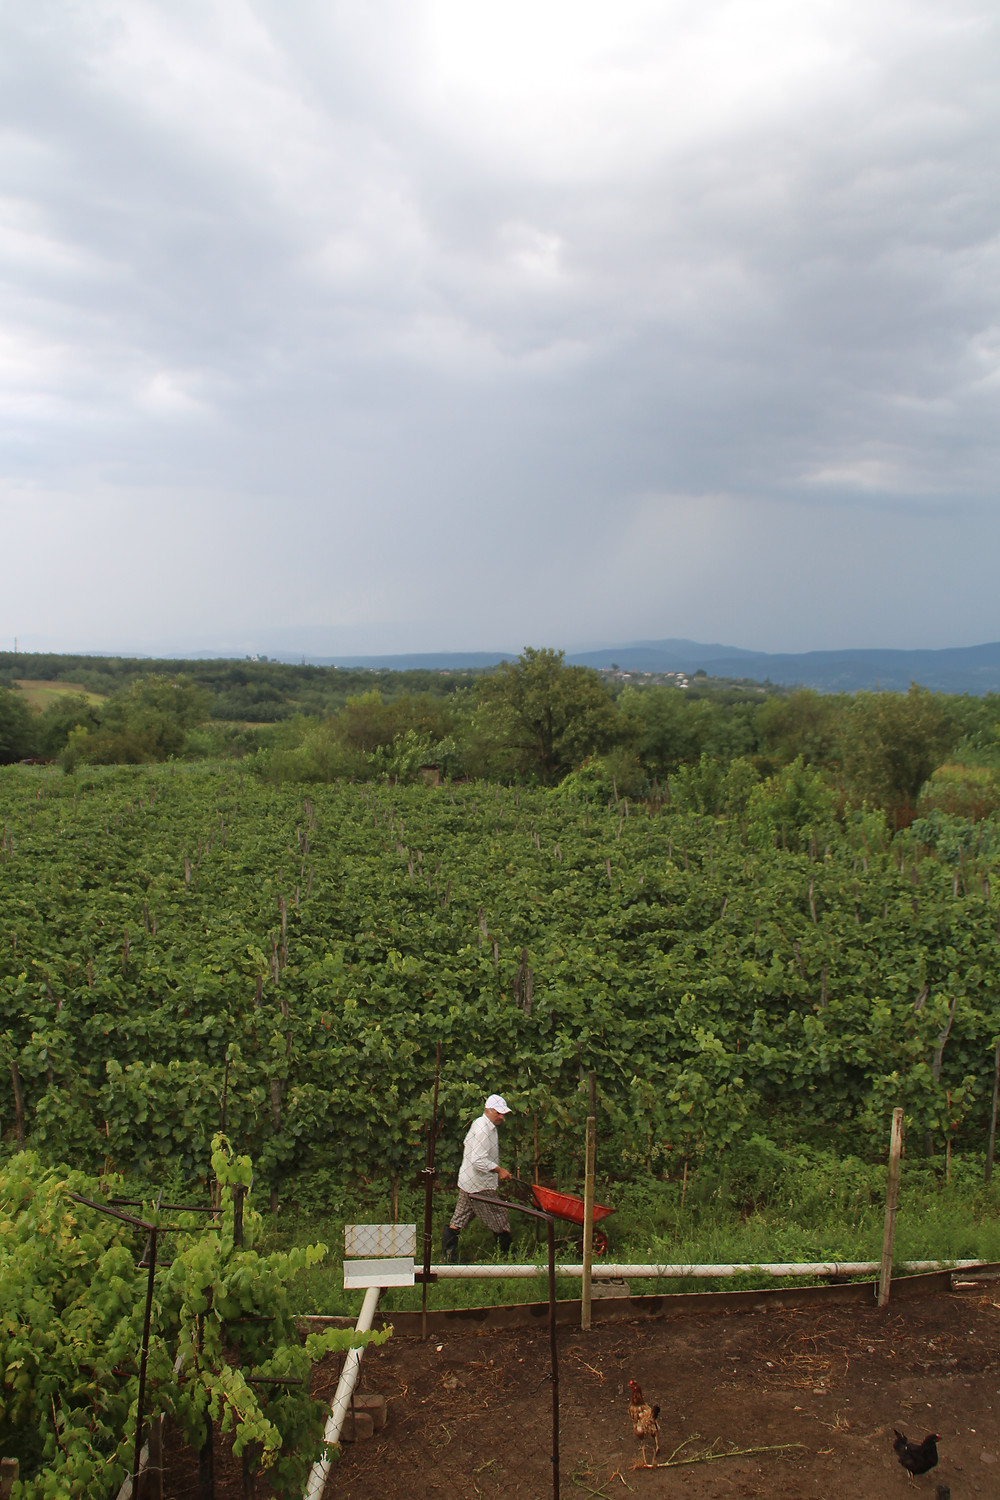 a man working in the vineyards of Obcha, Georgia